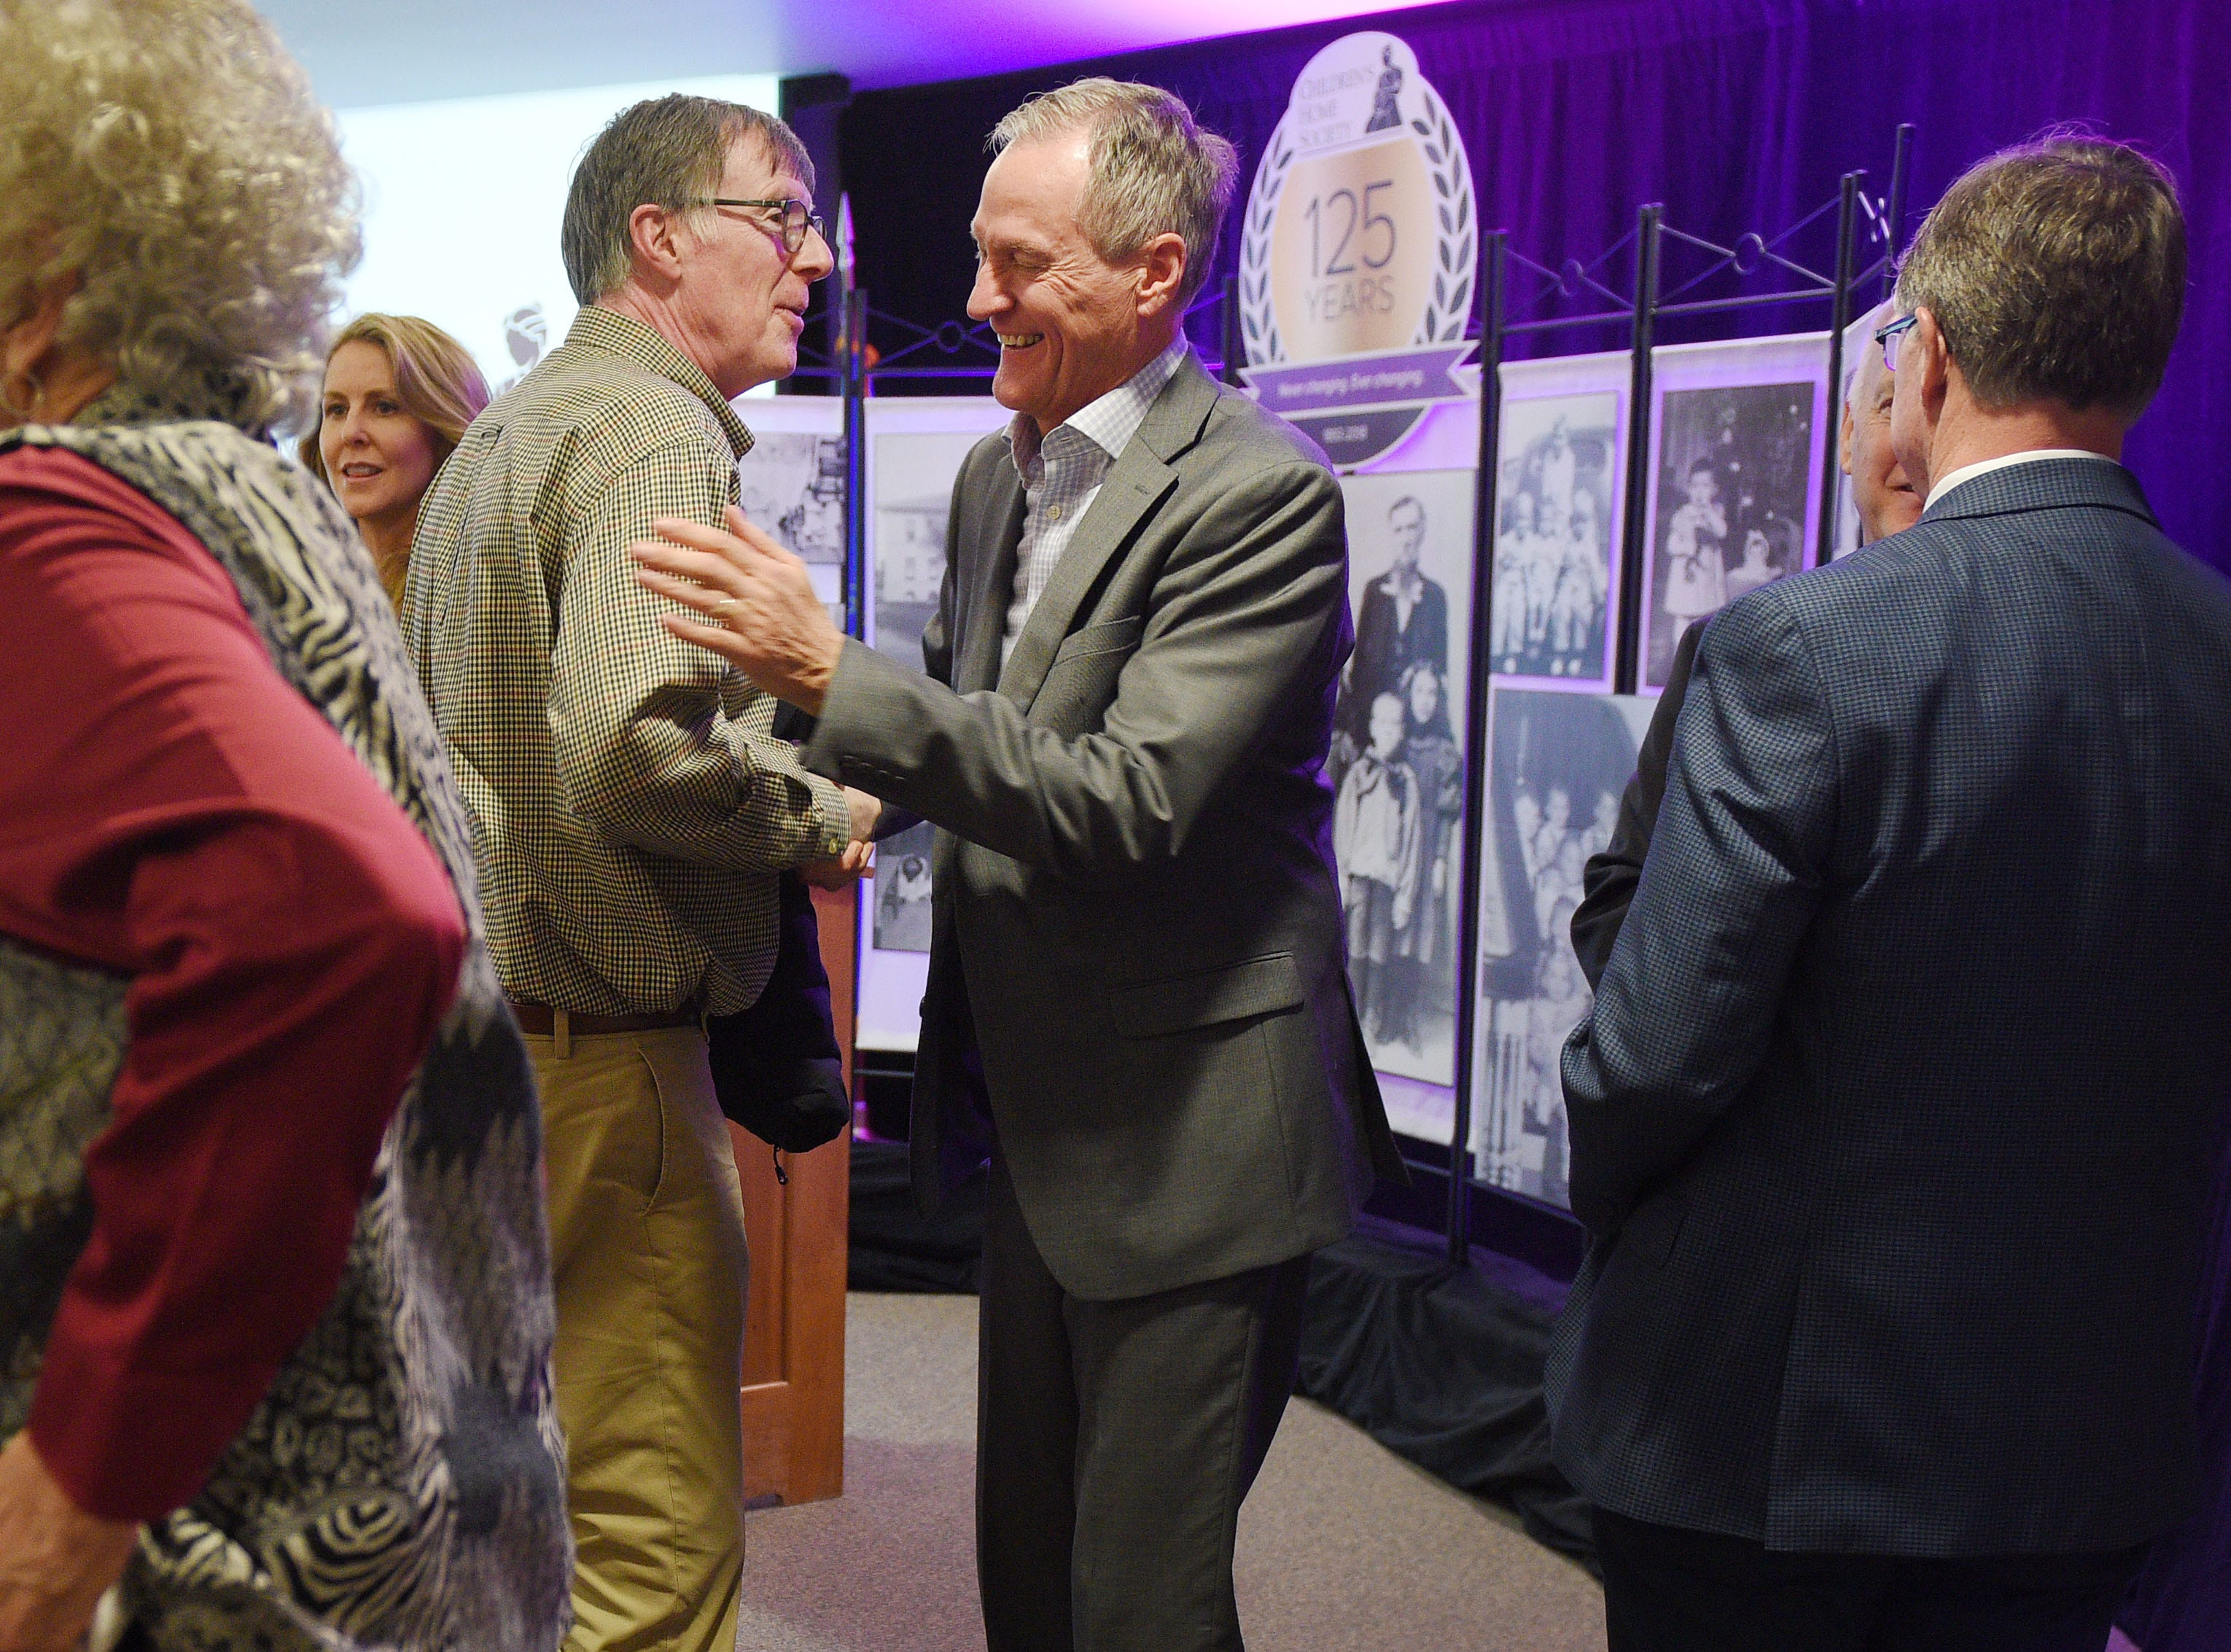 Former governor Dennis Daugaard greets people after a press conference about philanthropist T. Denny Sanford donating  $55 million to Children's Home Society Tuesday, Jan. 8, in Sioux Falls.